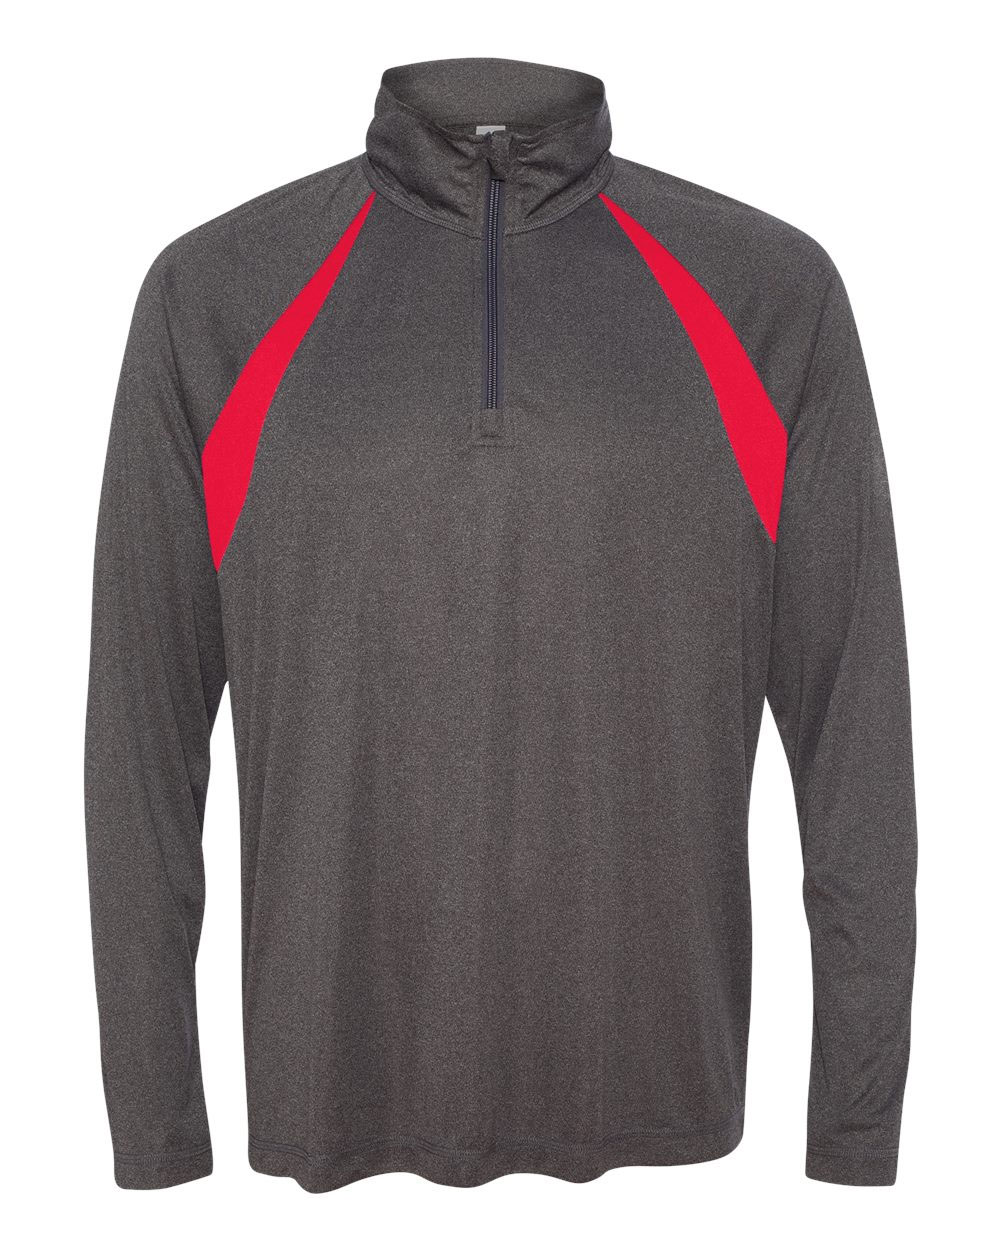 All Sport Mens Quarter-Zip Lightweight Pullover with Insets